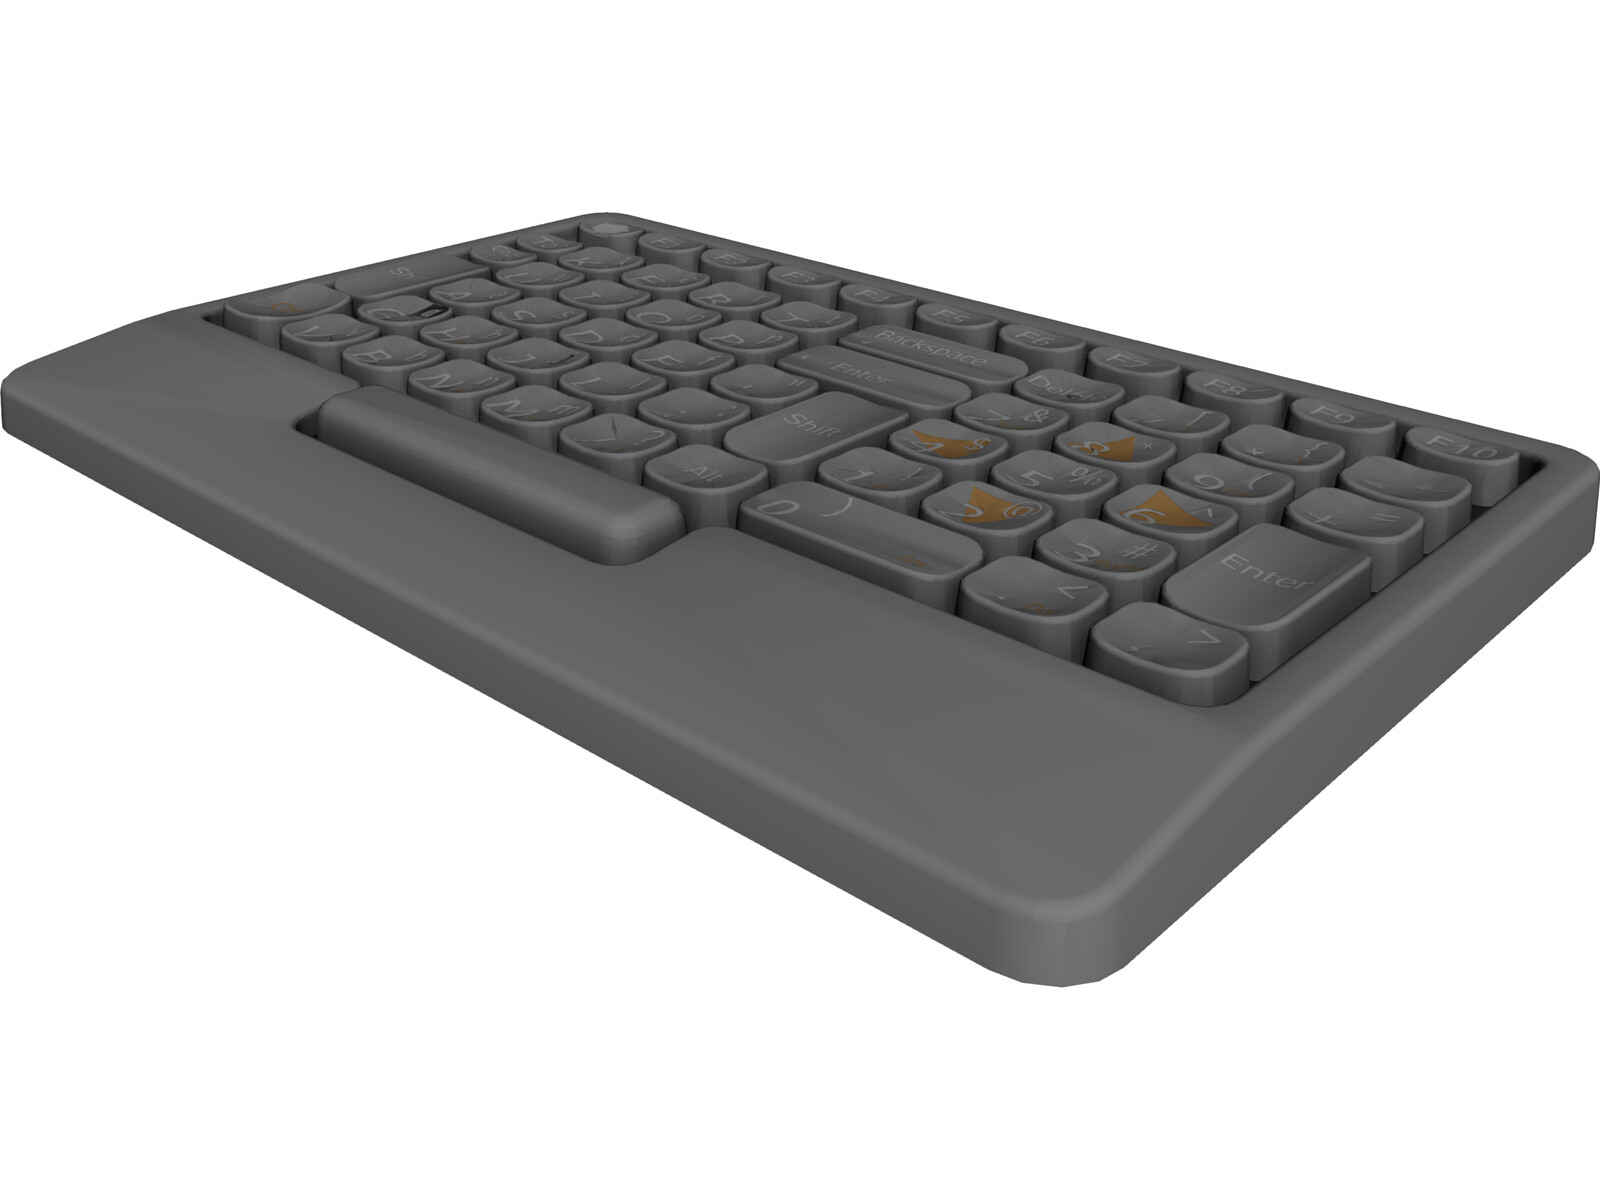 Abbreviated Left Hand Keyboard 3D CAD Model